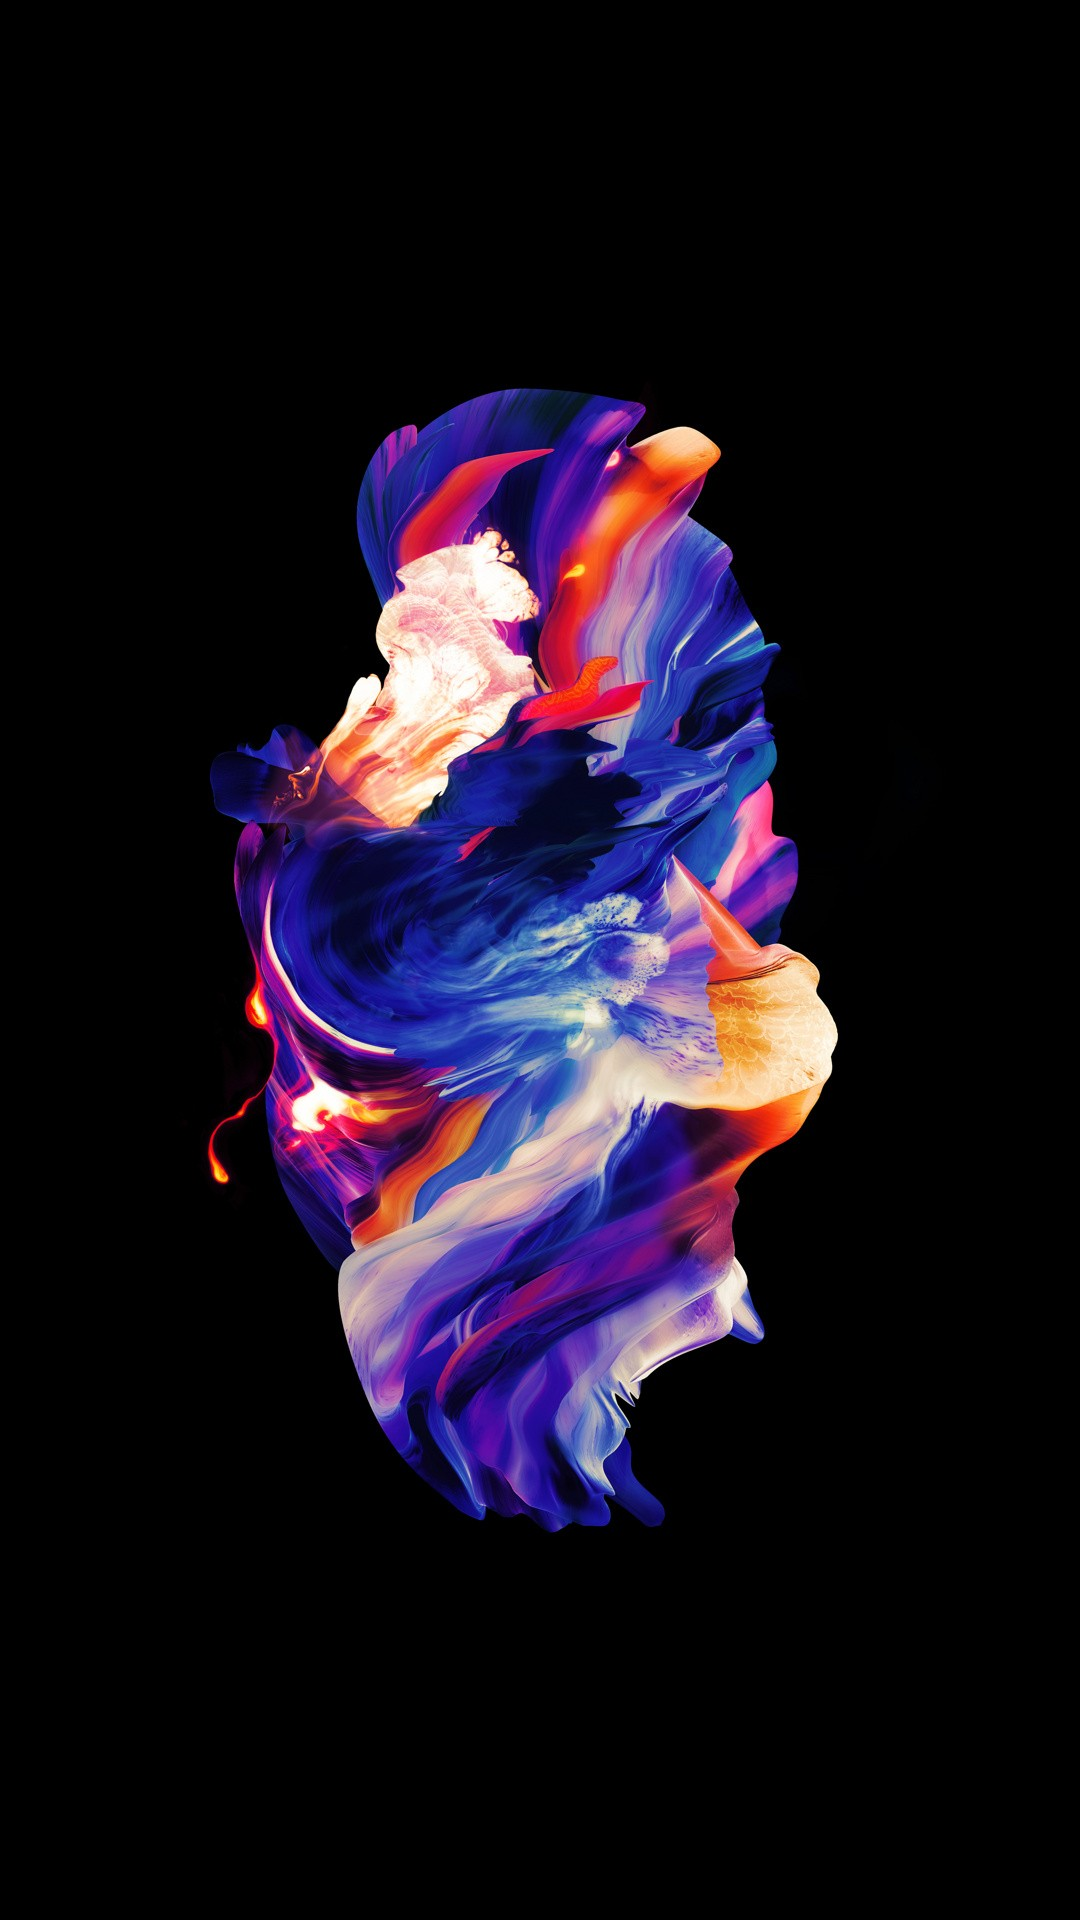 Oneplus 5 Wallpapers Hd